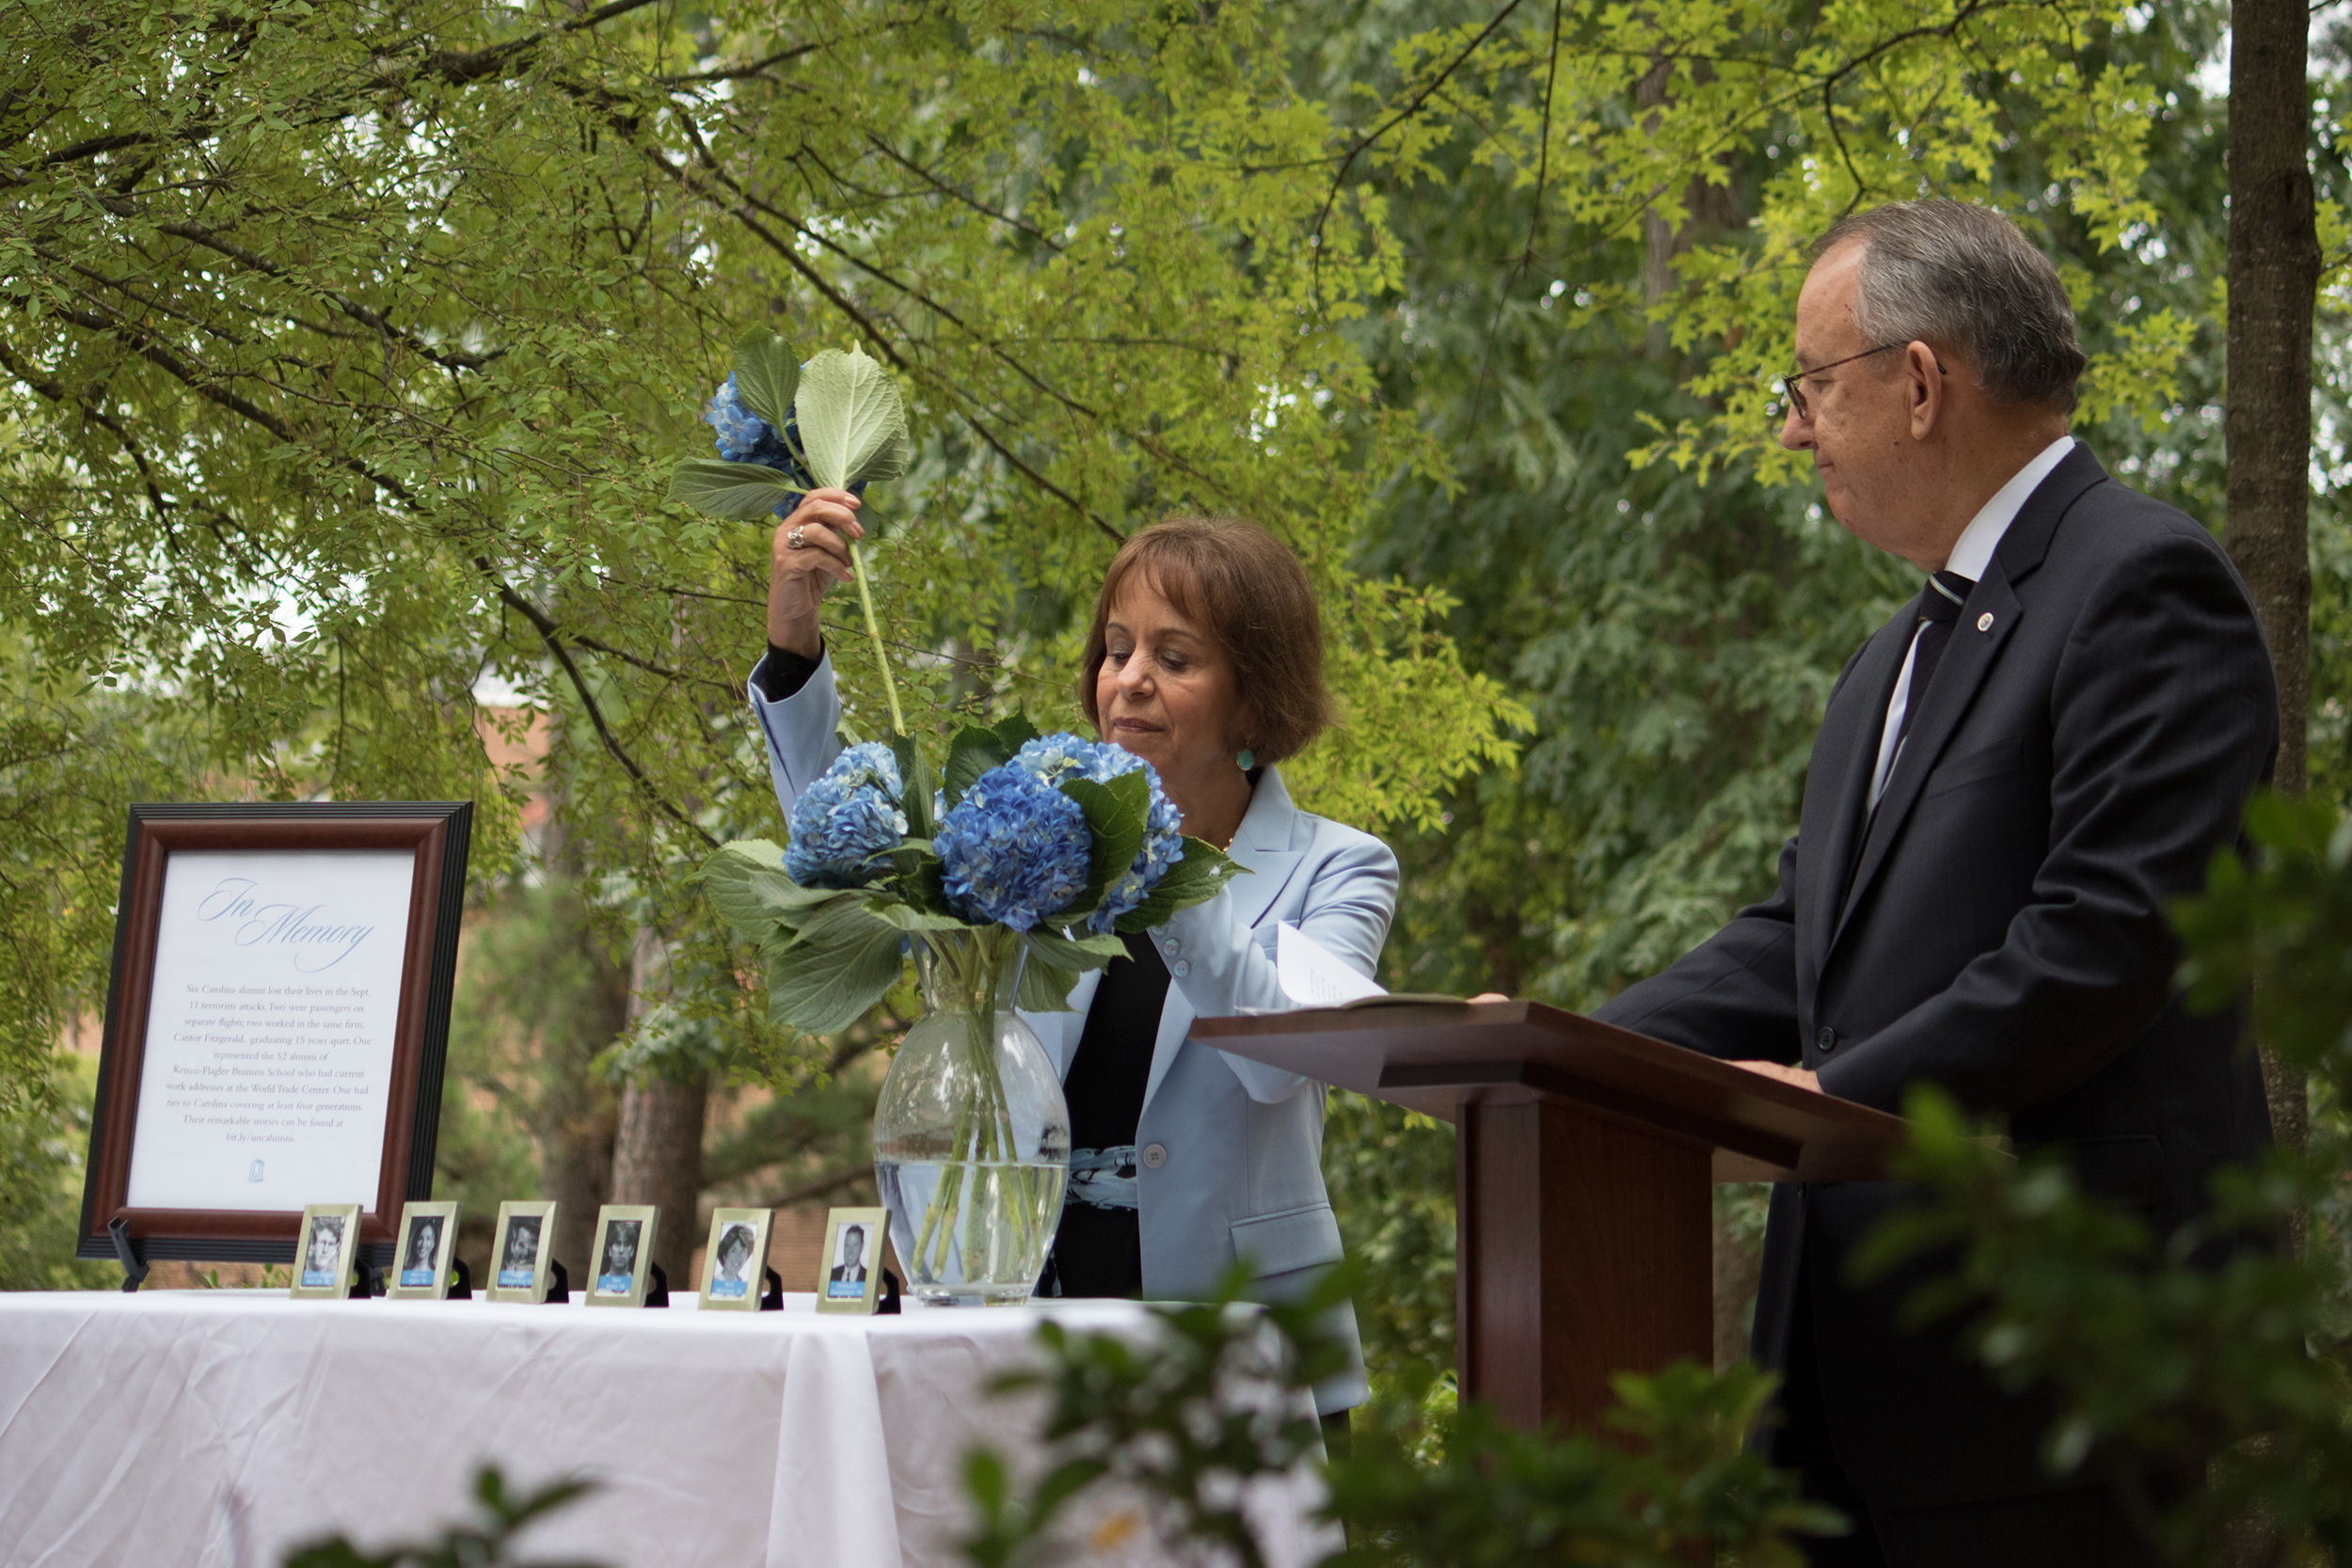 At a solemn ceremony this year at the 9/11 Memorial Garden, GAA President Doug Dibbert '70 read the names of the six alumni, as well as updates on their families today, and Chancellor Carol L. Folt placed a Carolina blue-and-white hydrangea in a vase beside their photos as each name was called. Those present observed a moment of silence afterward. (Photo by Jason D. Smith '94)